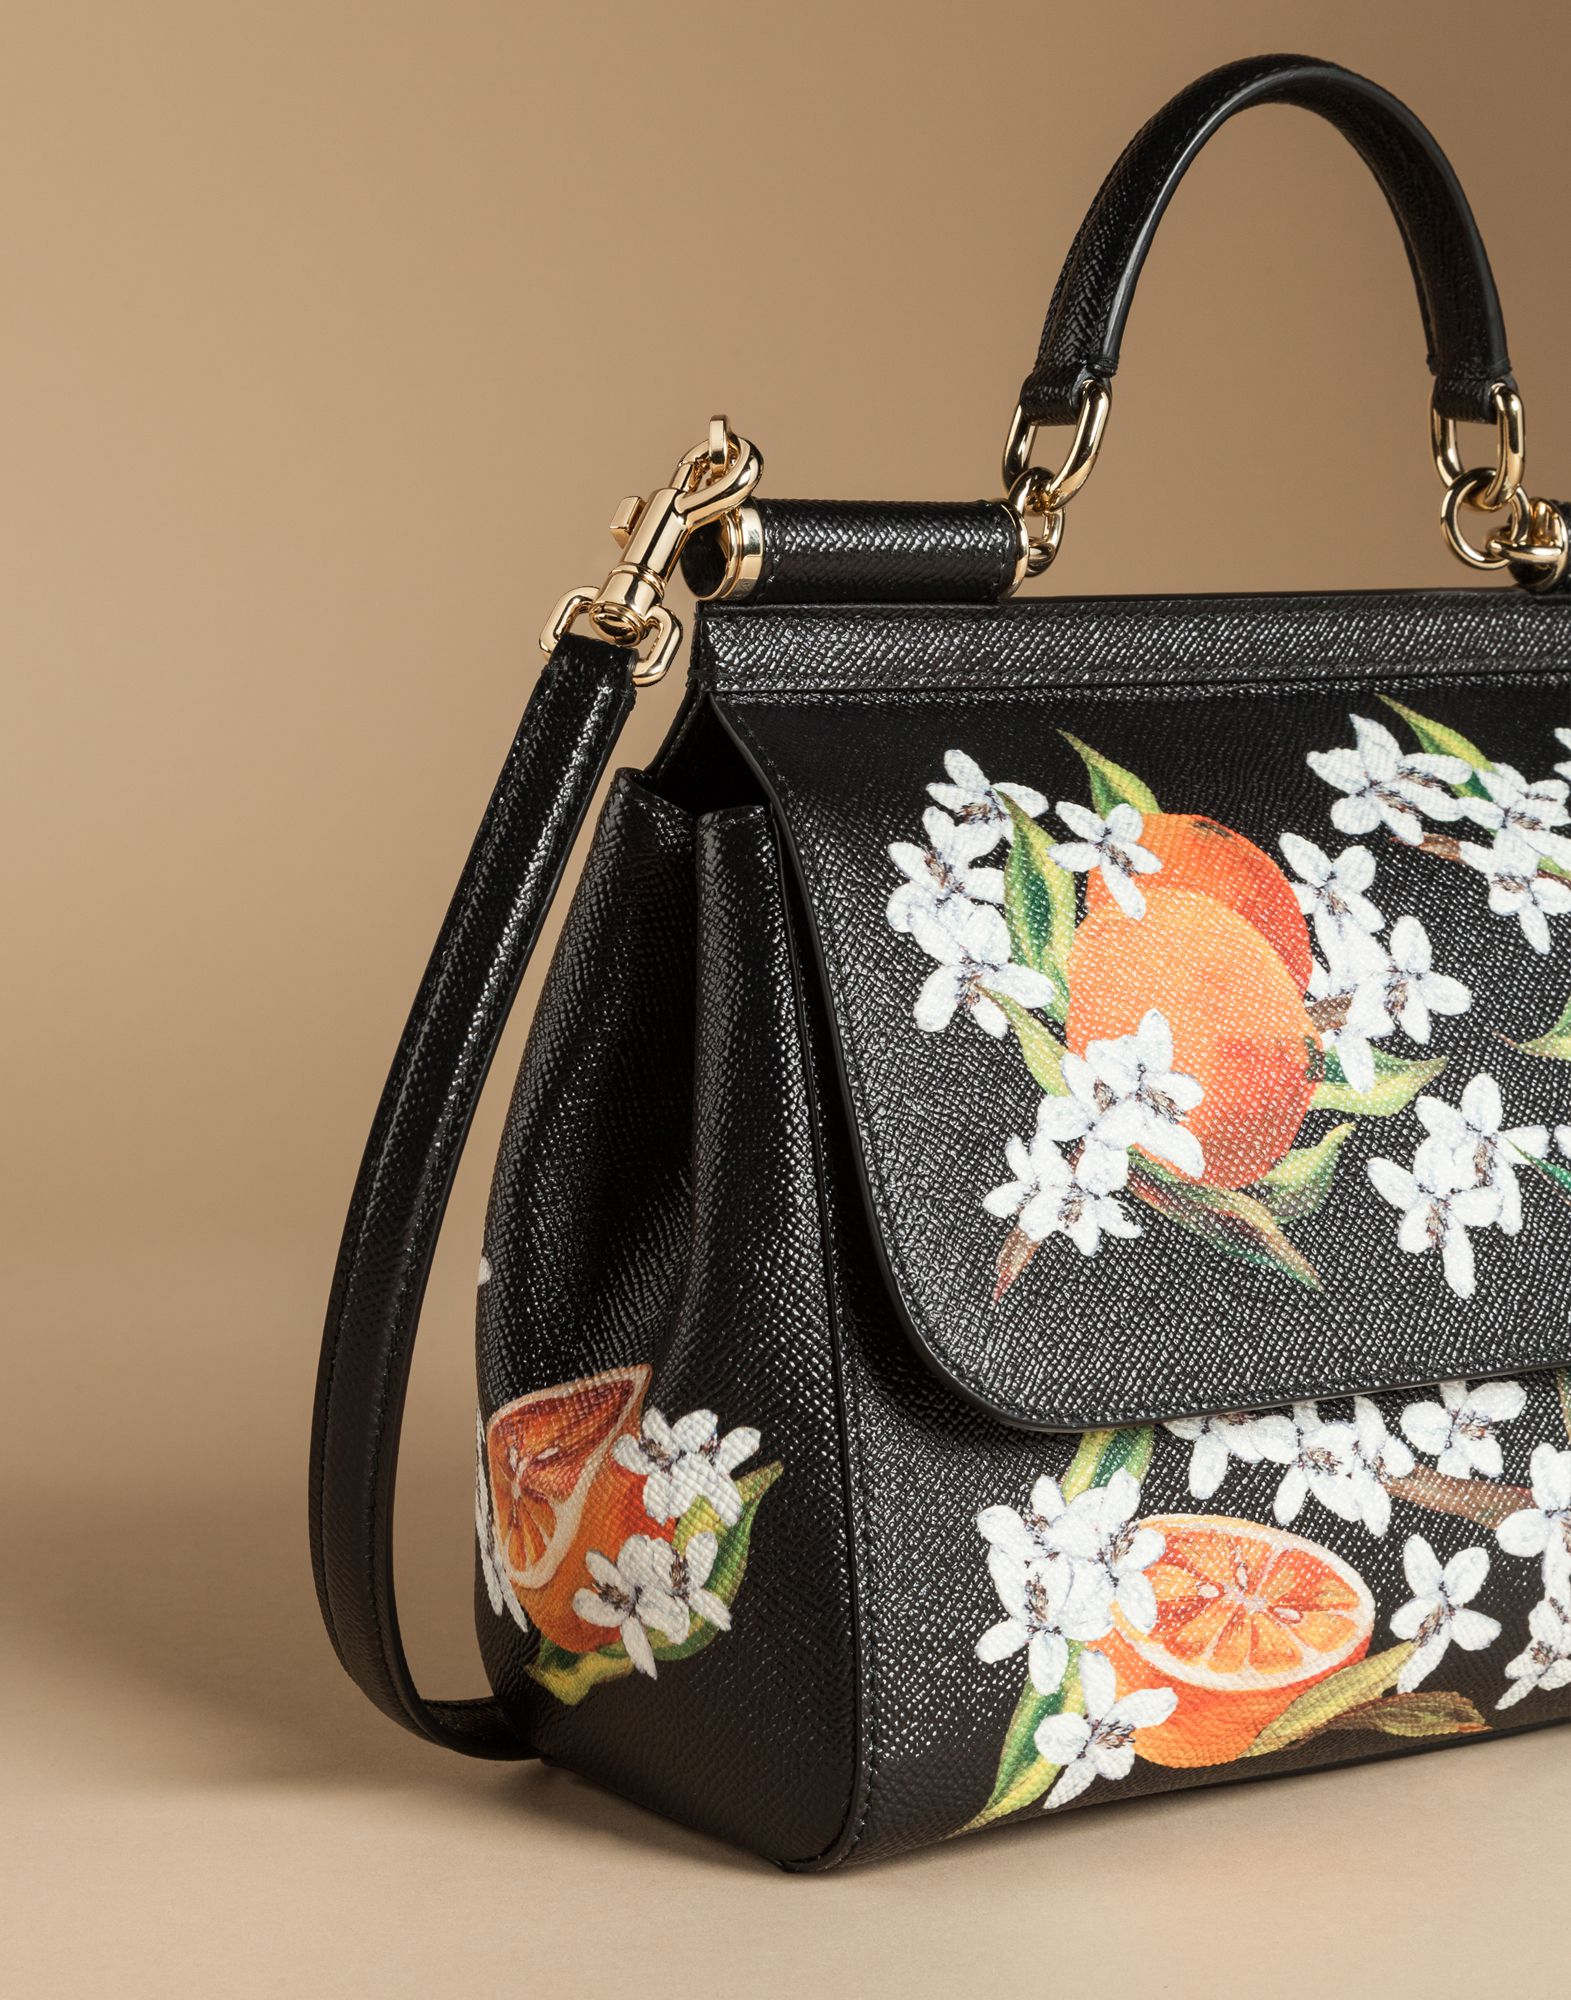 d56a62d515 Lyst - Dolce   Gabbana Medium Sicily Bag In Printed Dauphine Leather ...